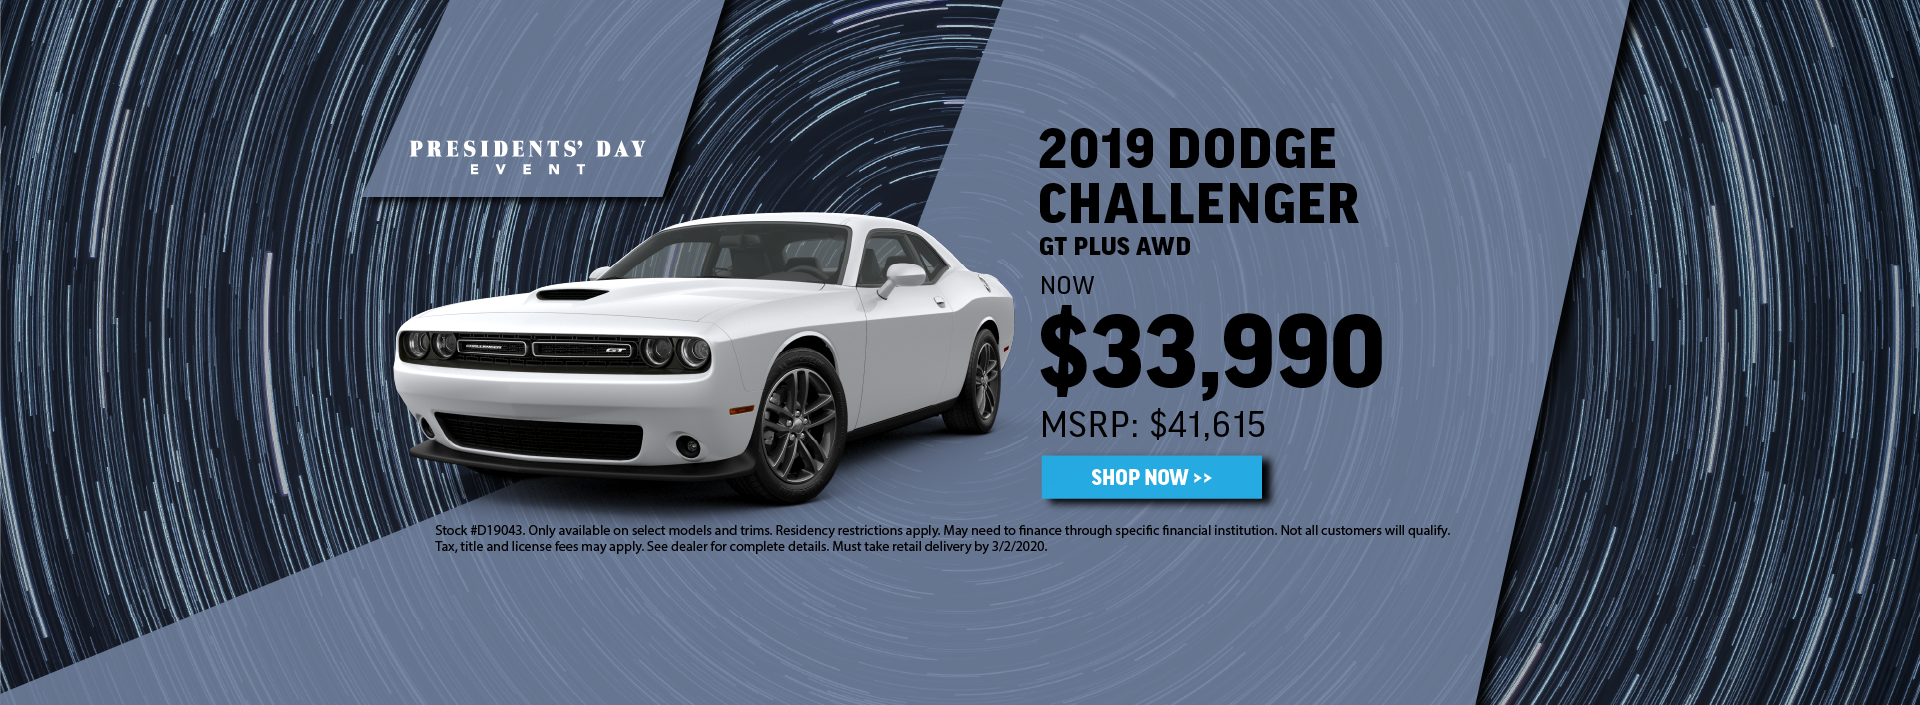 2019 Dodge Challenger Offer